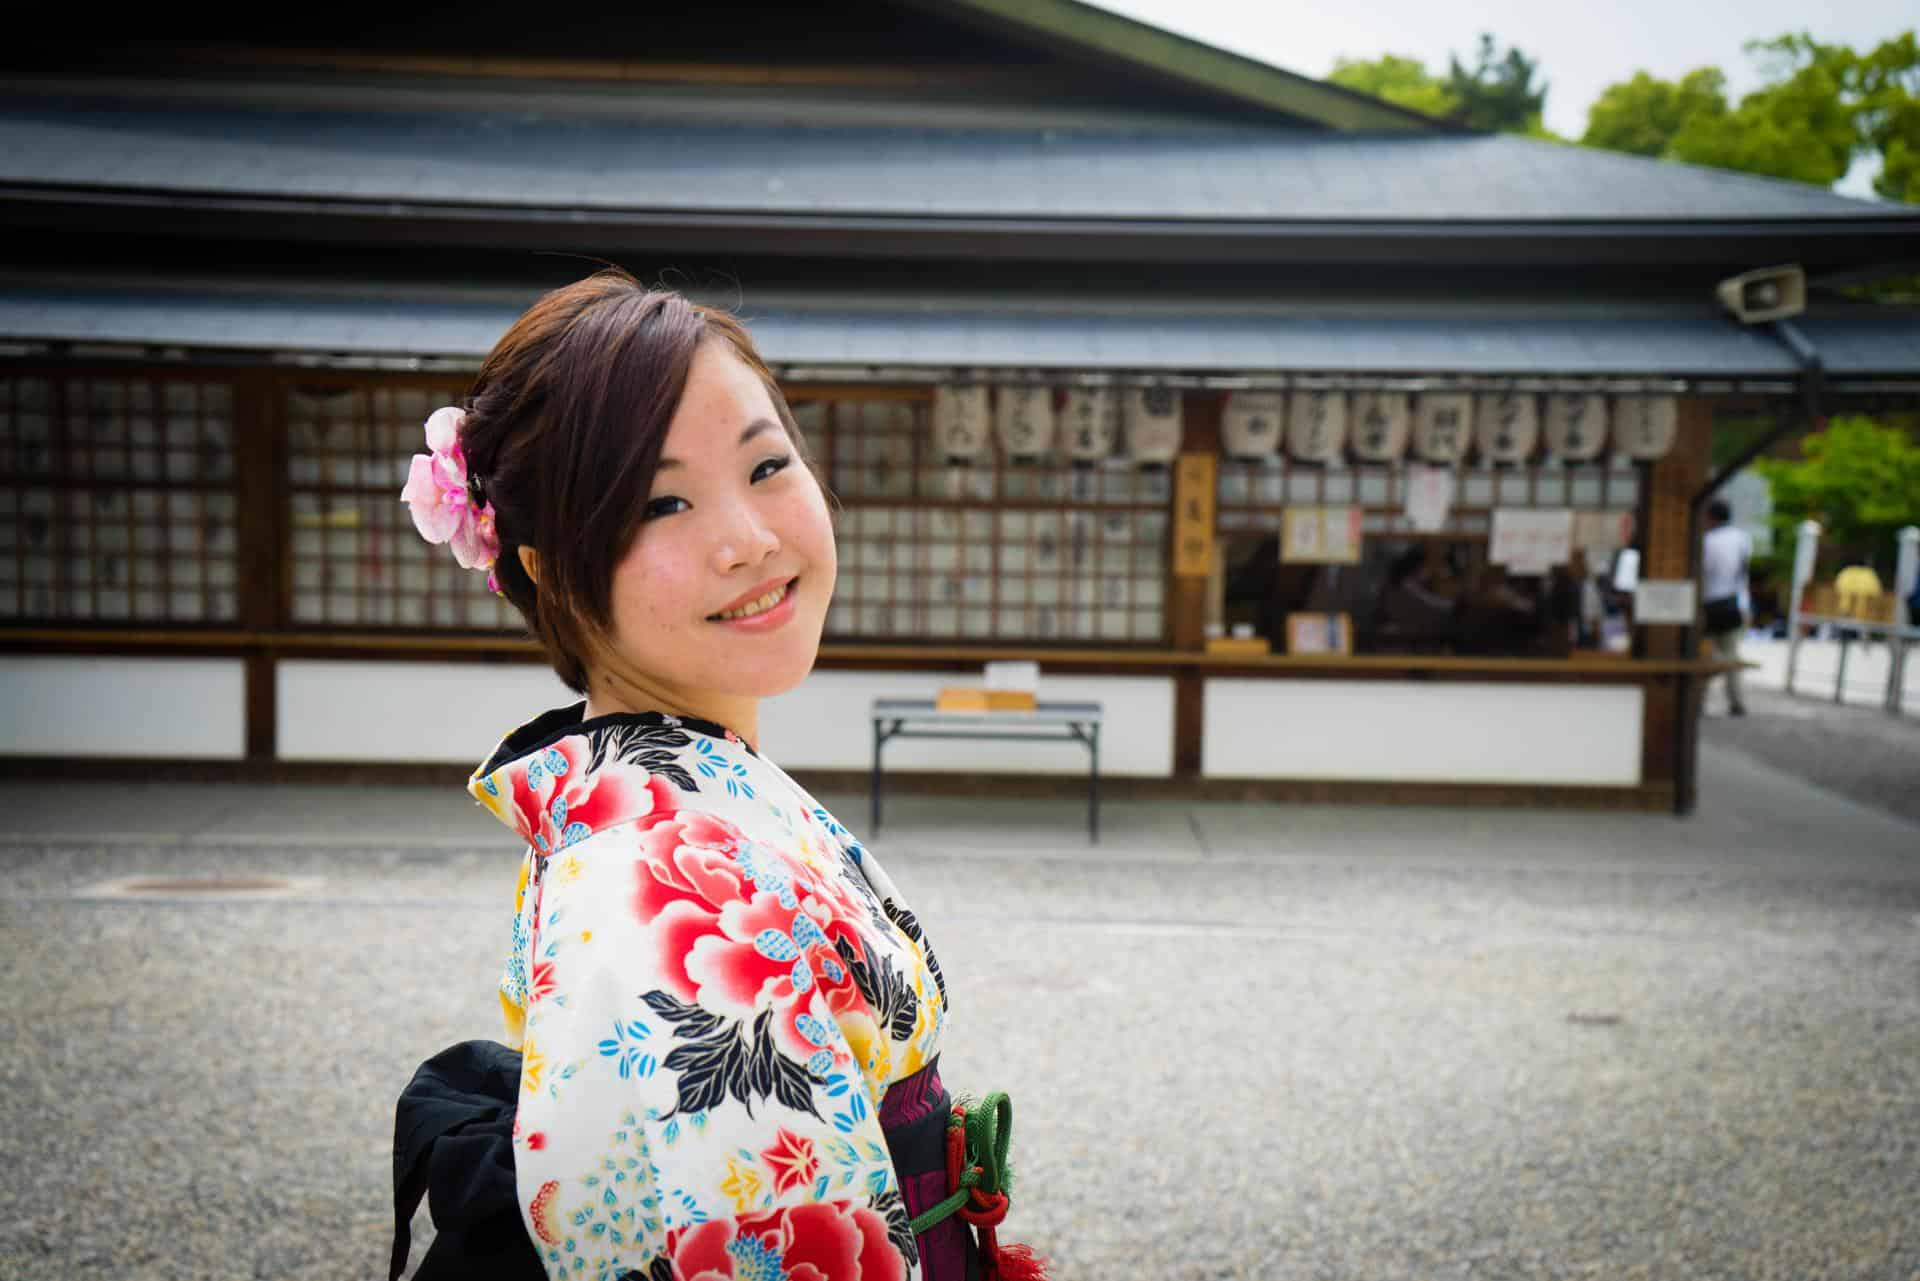 Stephie in Japan (photo by The Caffeinated Vegan)